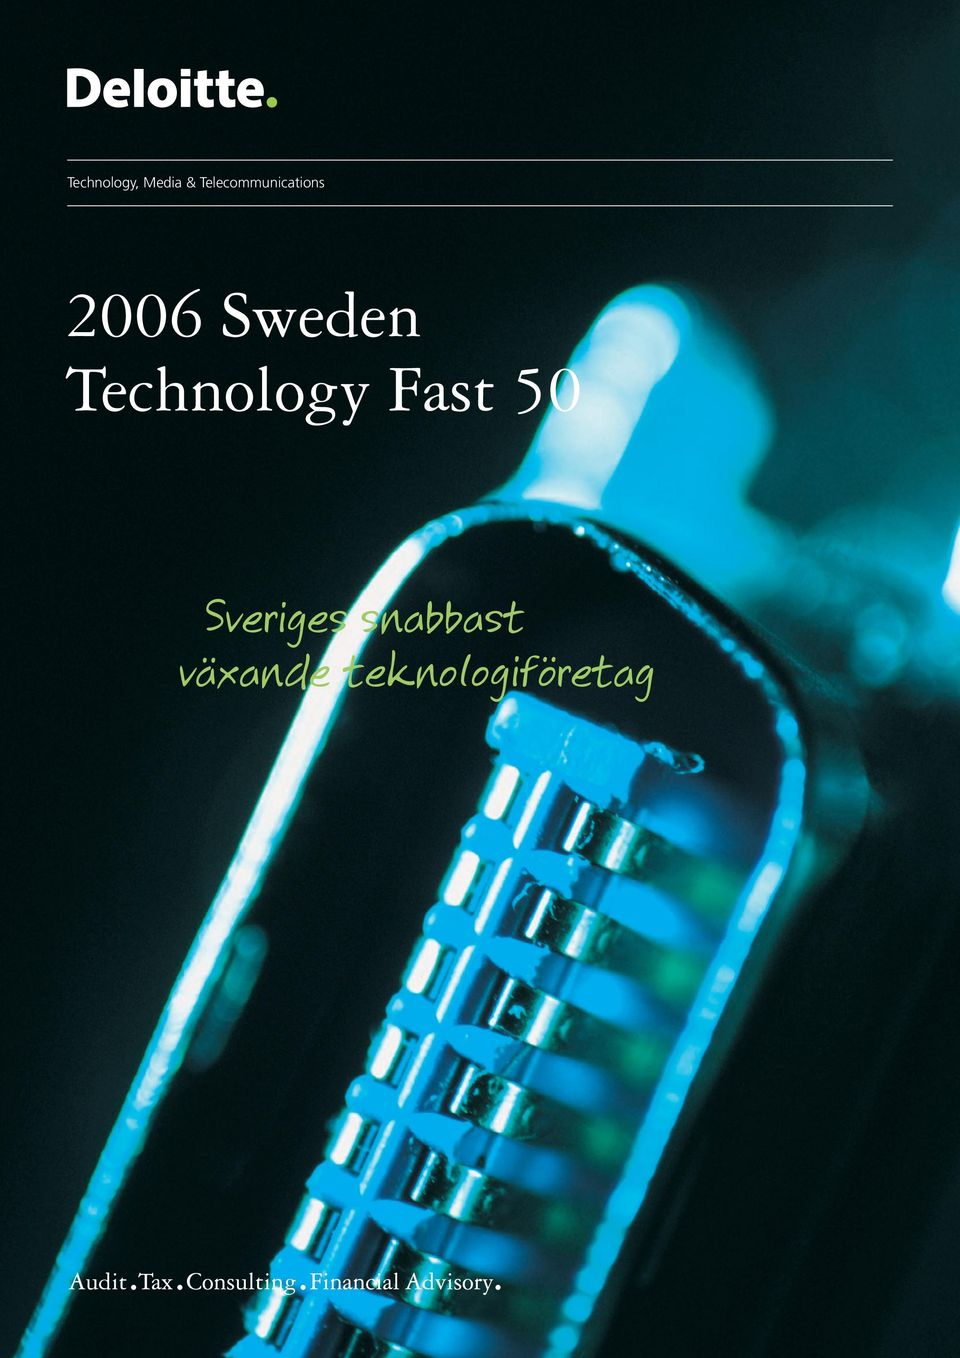 Sweden Technology Fast 50